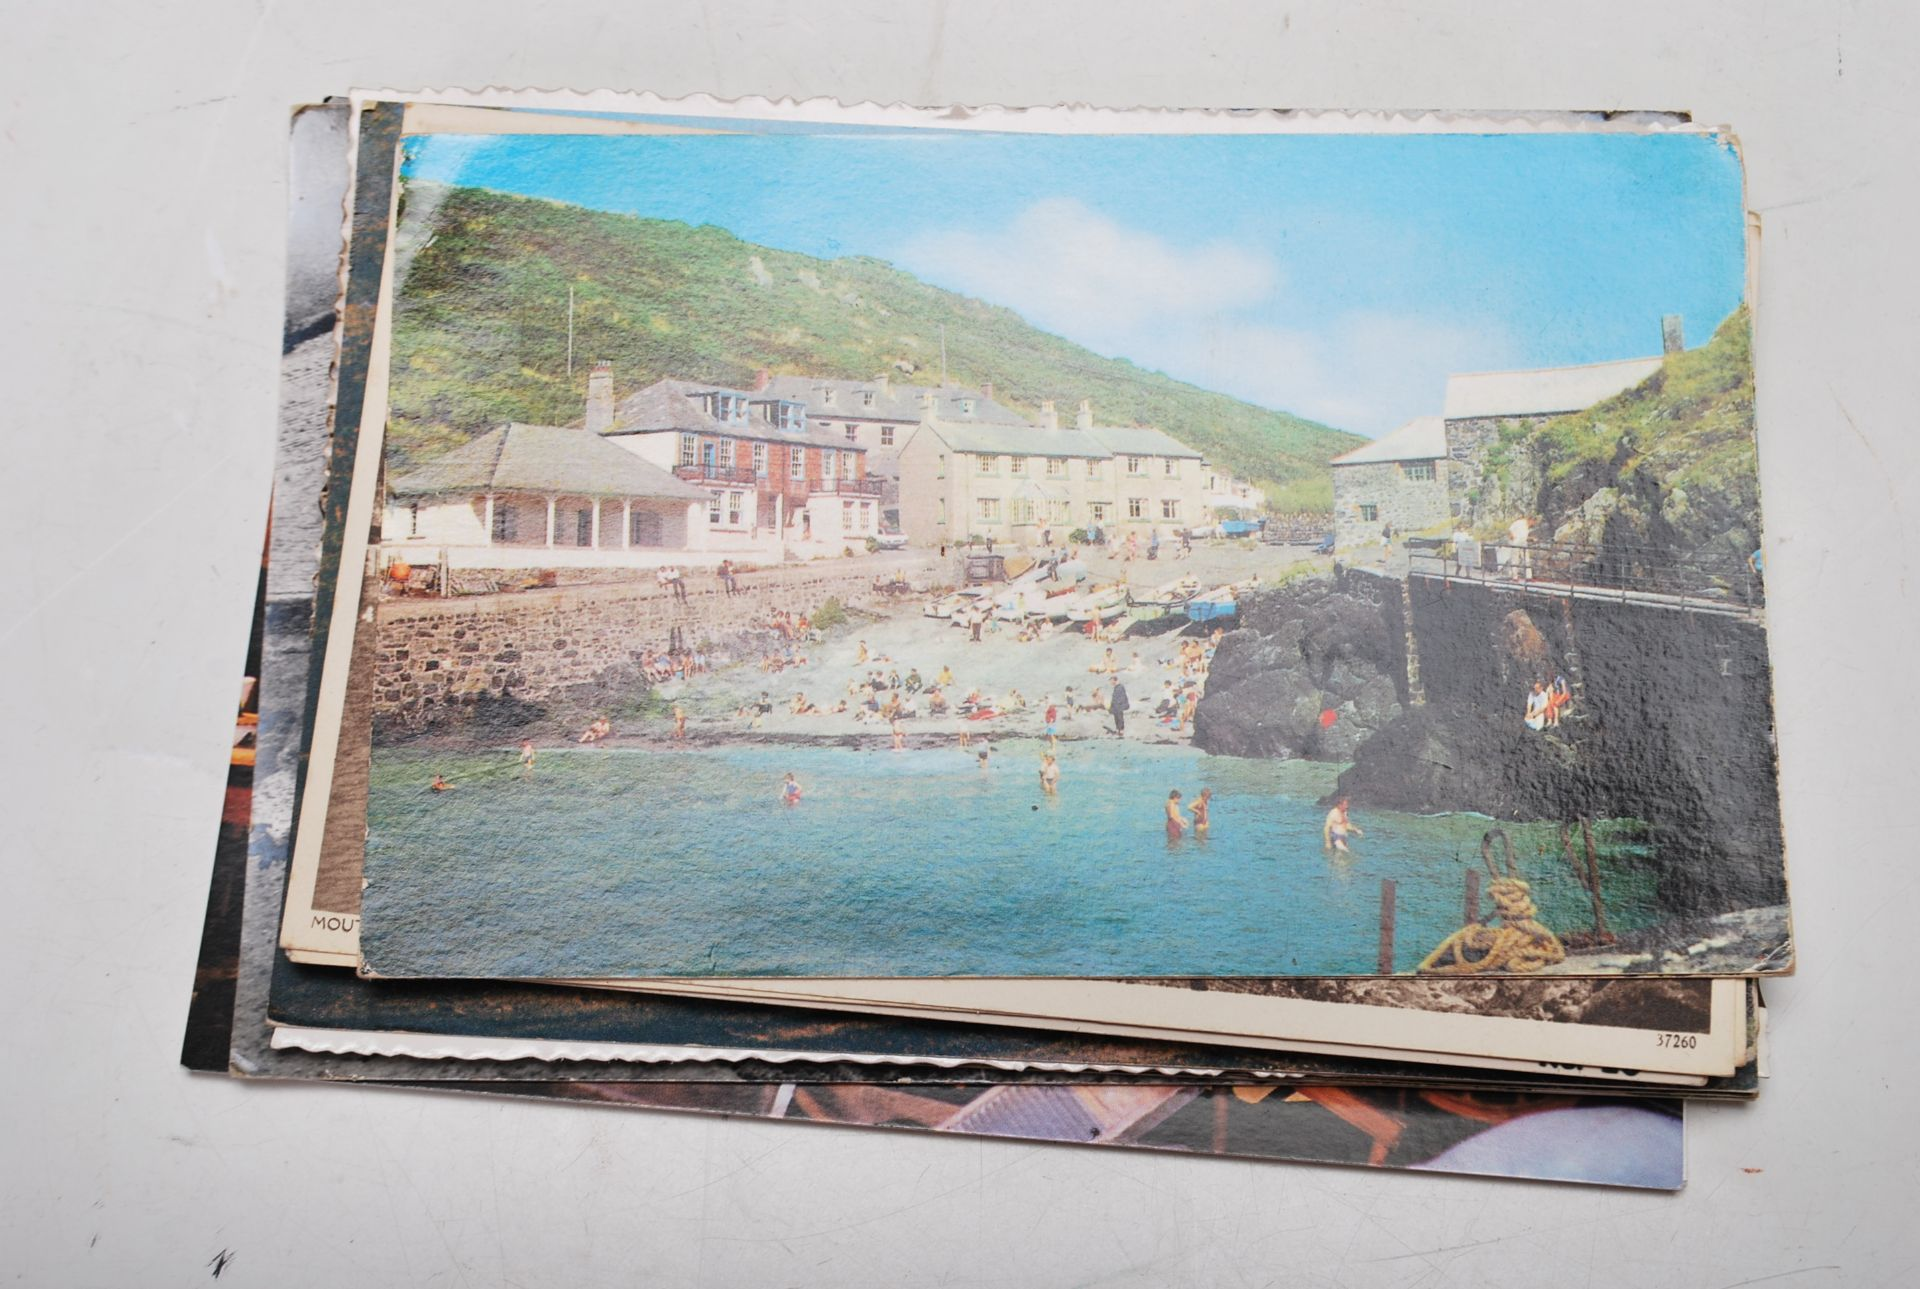 COLLECTION OF VINTAGE POSTCARDS - CORNWALL BRISTOL - Image 5 of 6